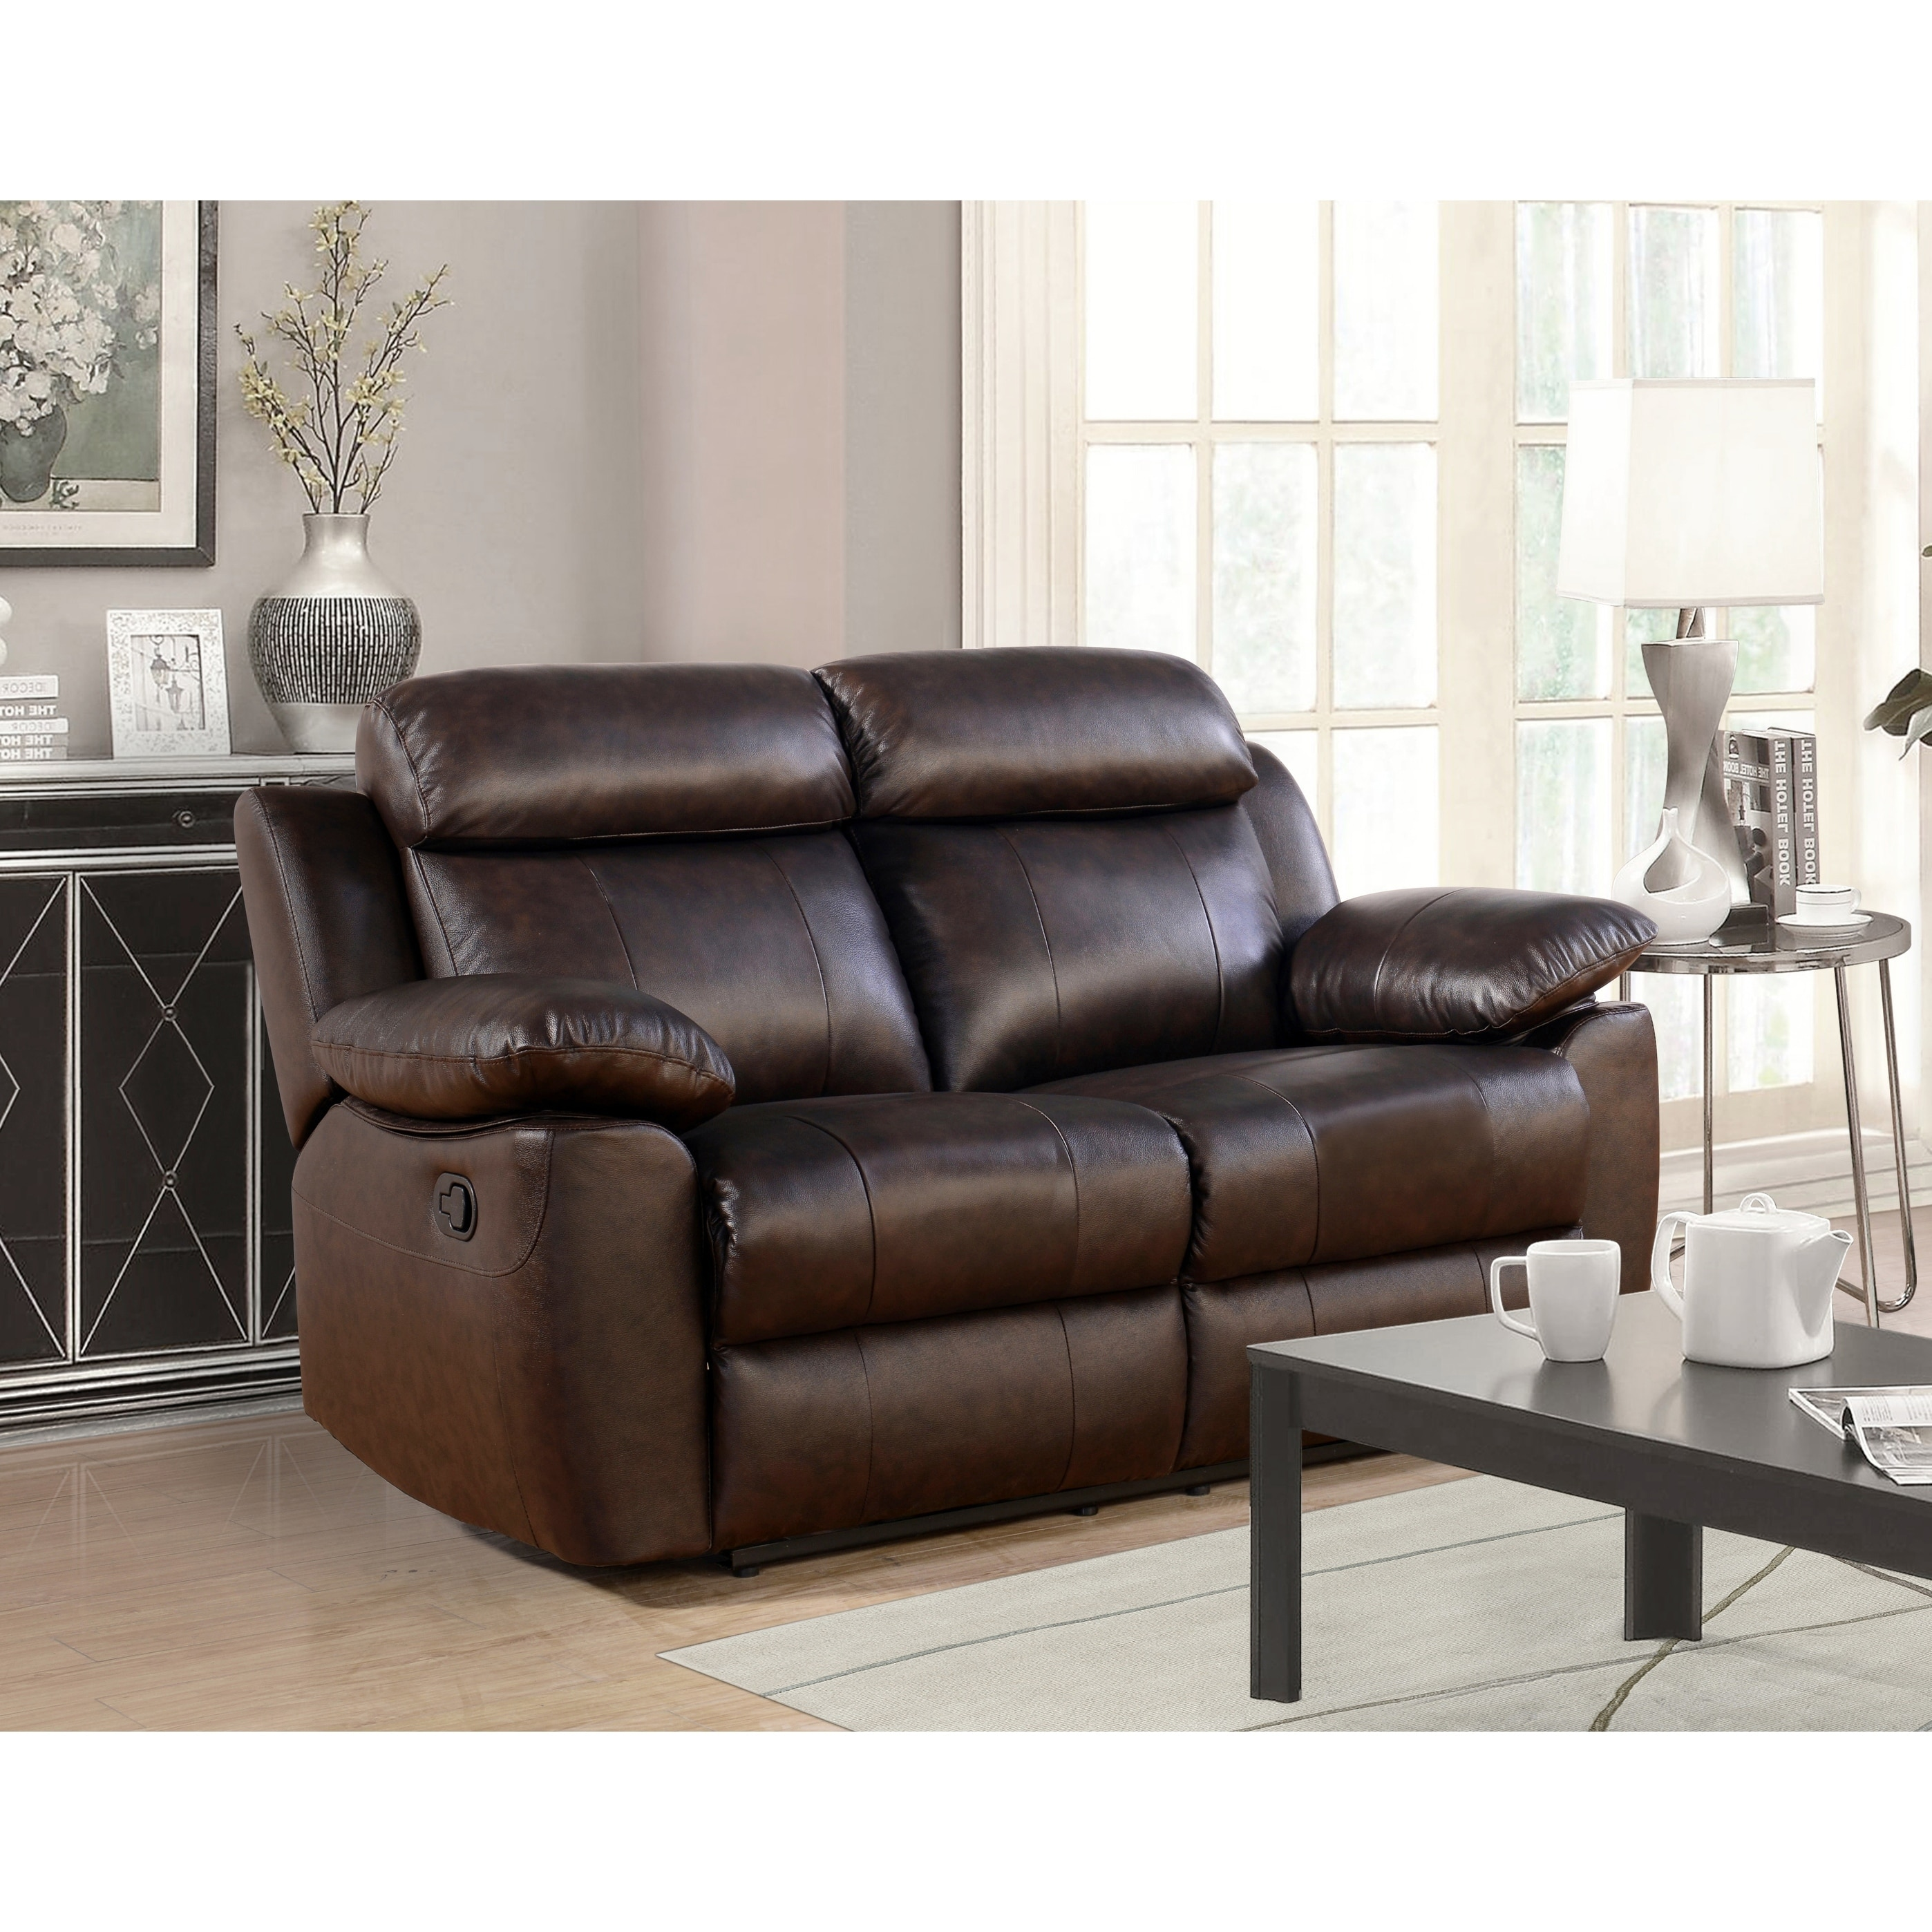 ae leather pushback home dp amazon reclining com abbyson loveseat kitchen durham